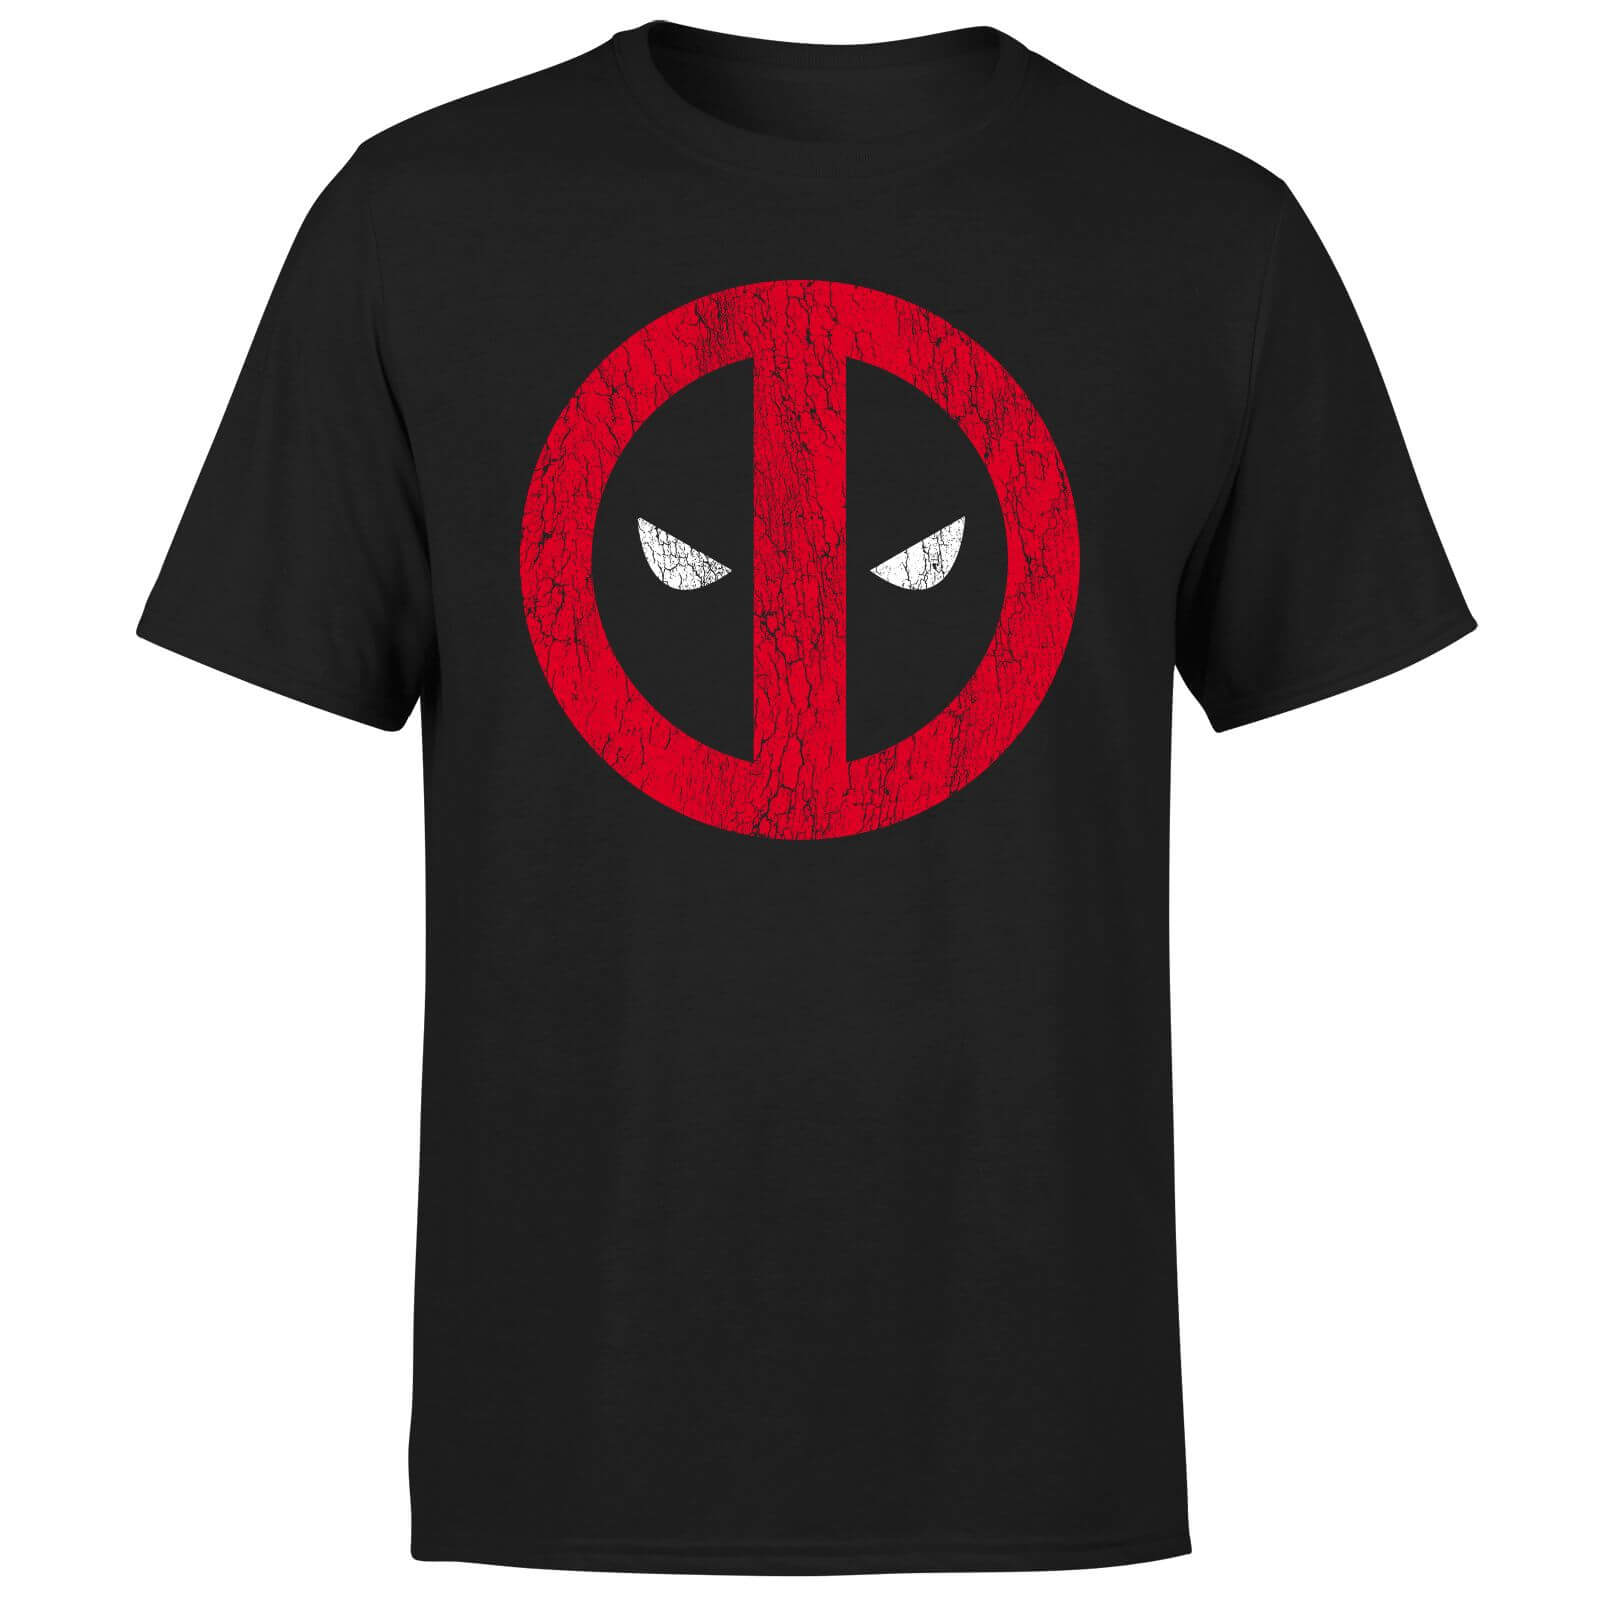 Marvel Deadpool Cracked Logo T-Shirt - Black